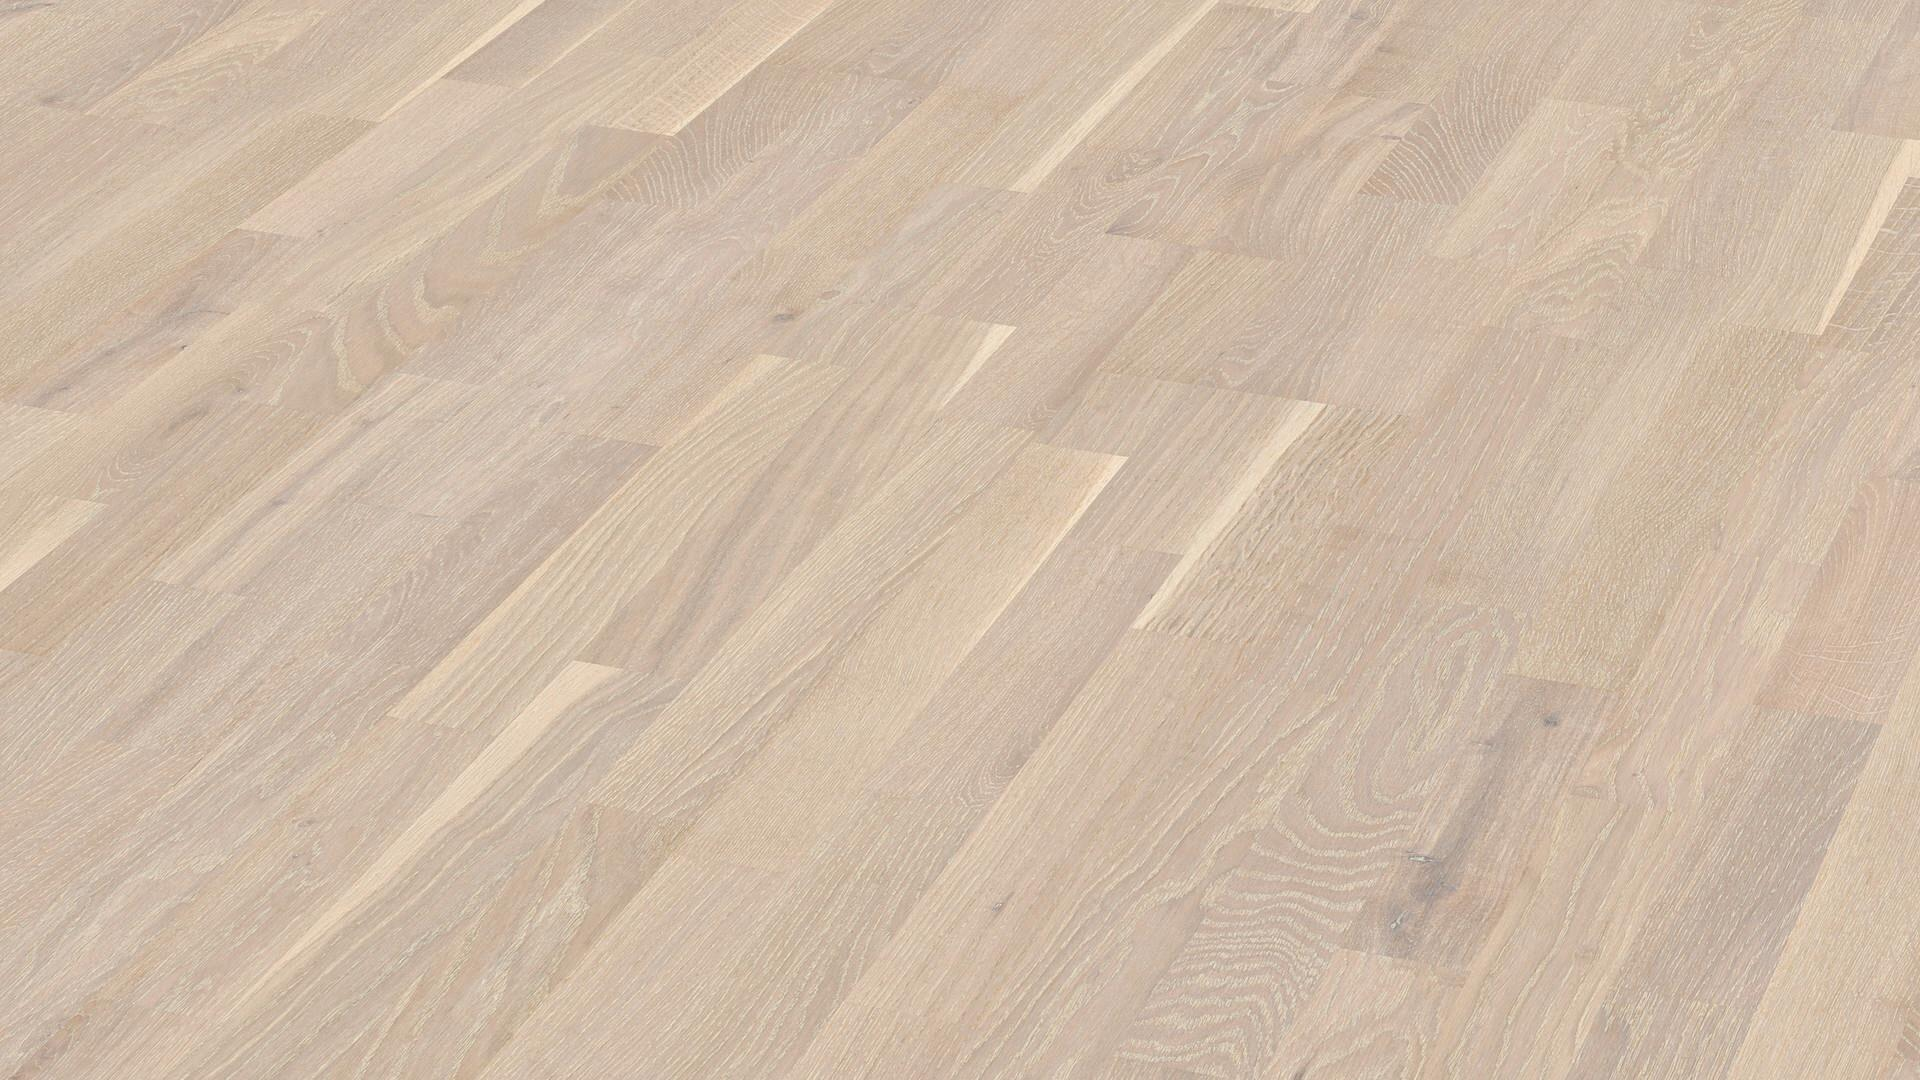 Parquet flooring MeisterParquet. longlife PC 200 Limed white oak lively 8480